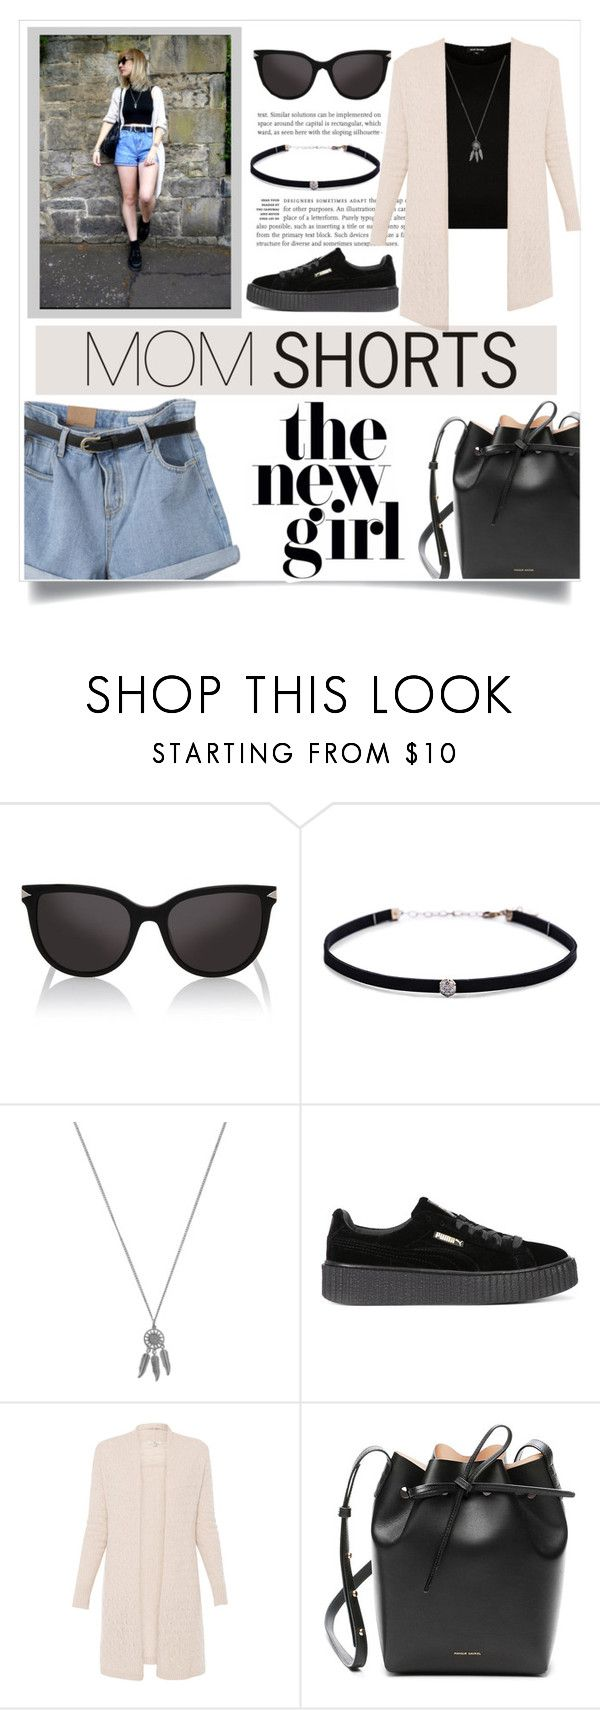 """""""Mom Shorts"""" by aylizzle01 ❤ liked on Polyvore featuring Karl Lagerfeld, Carbon & Hyde, Accessorize, Puma and Mansur Gavriel"""